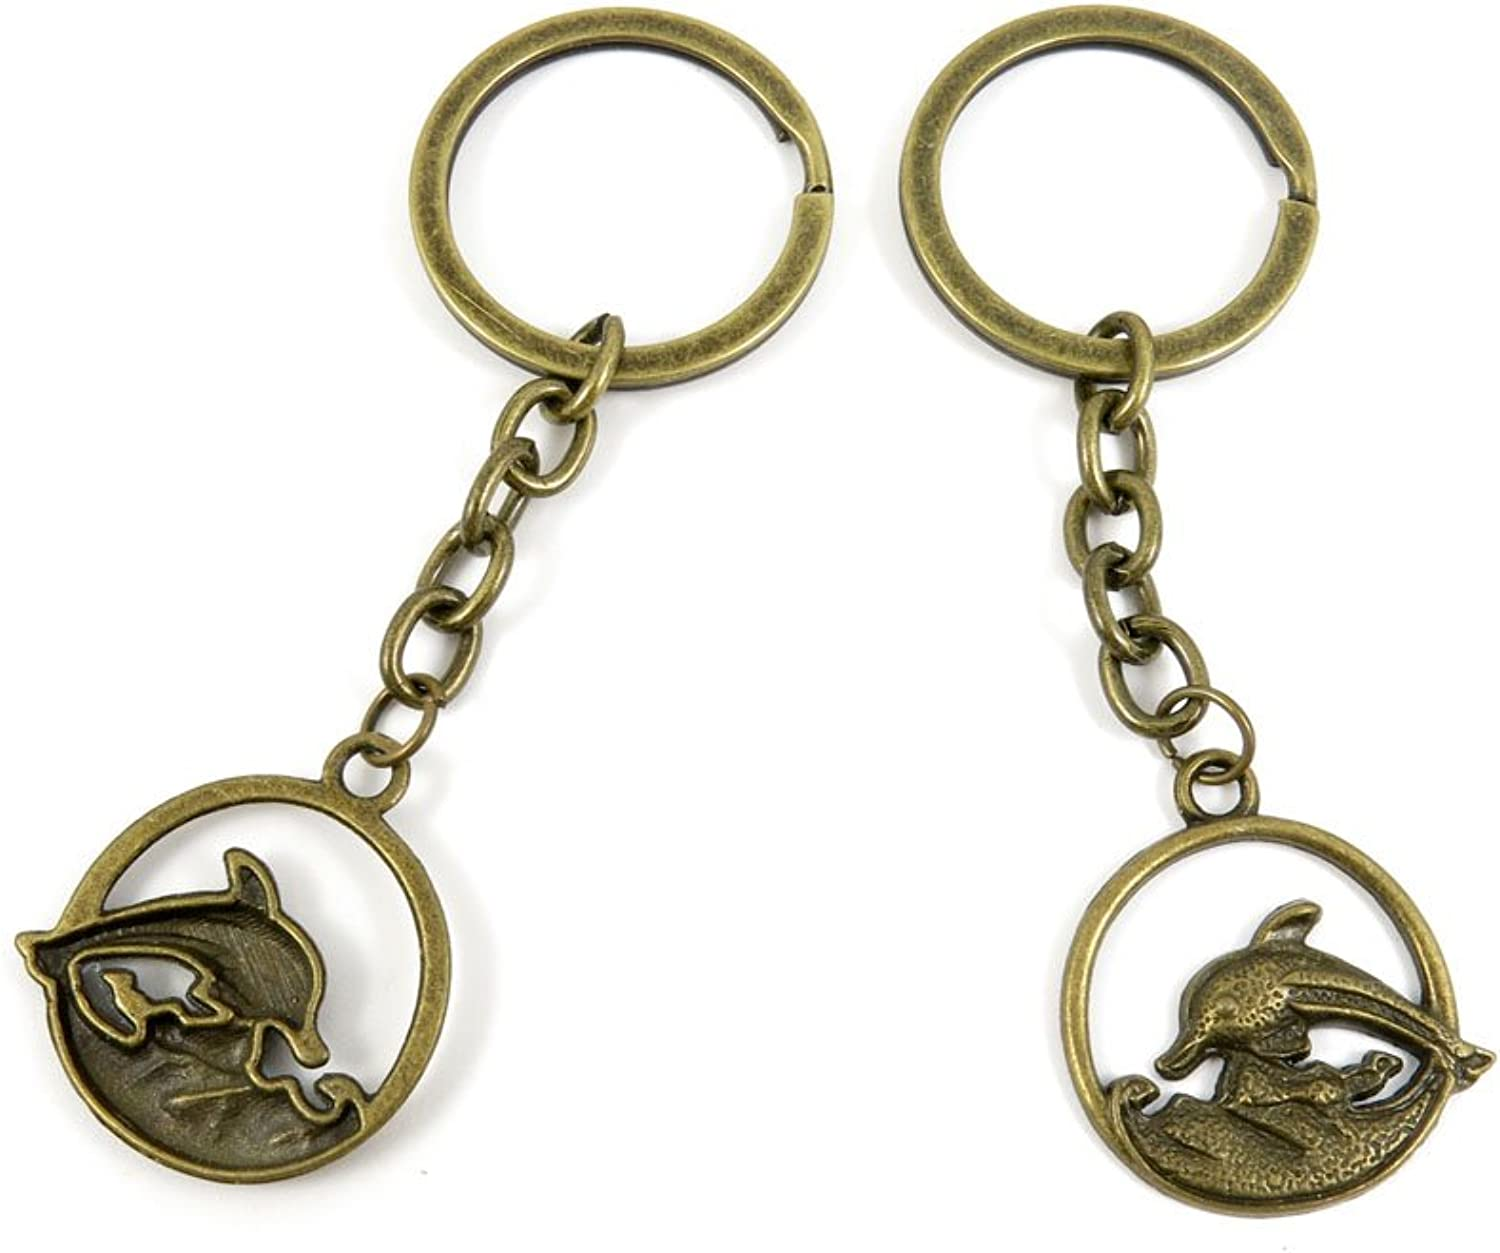 100 PCS Keyrings Keychains Key Ring Chains Tags Jewelry Findings Clasps Buckles Supplies Z8RQ2 Dolphin